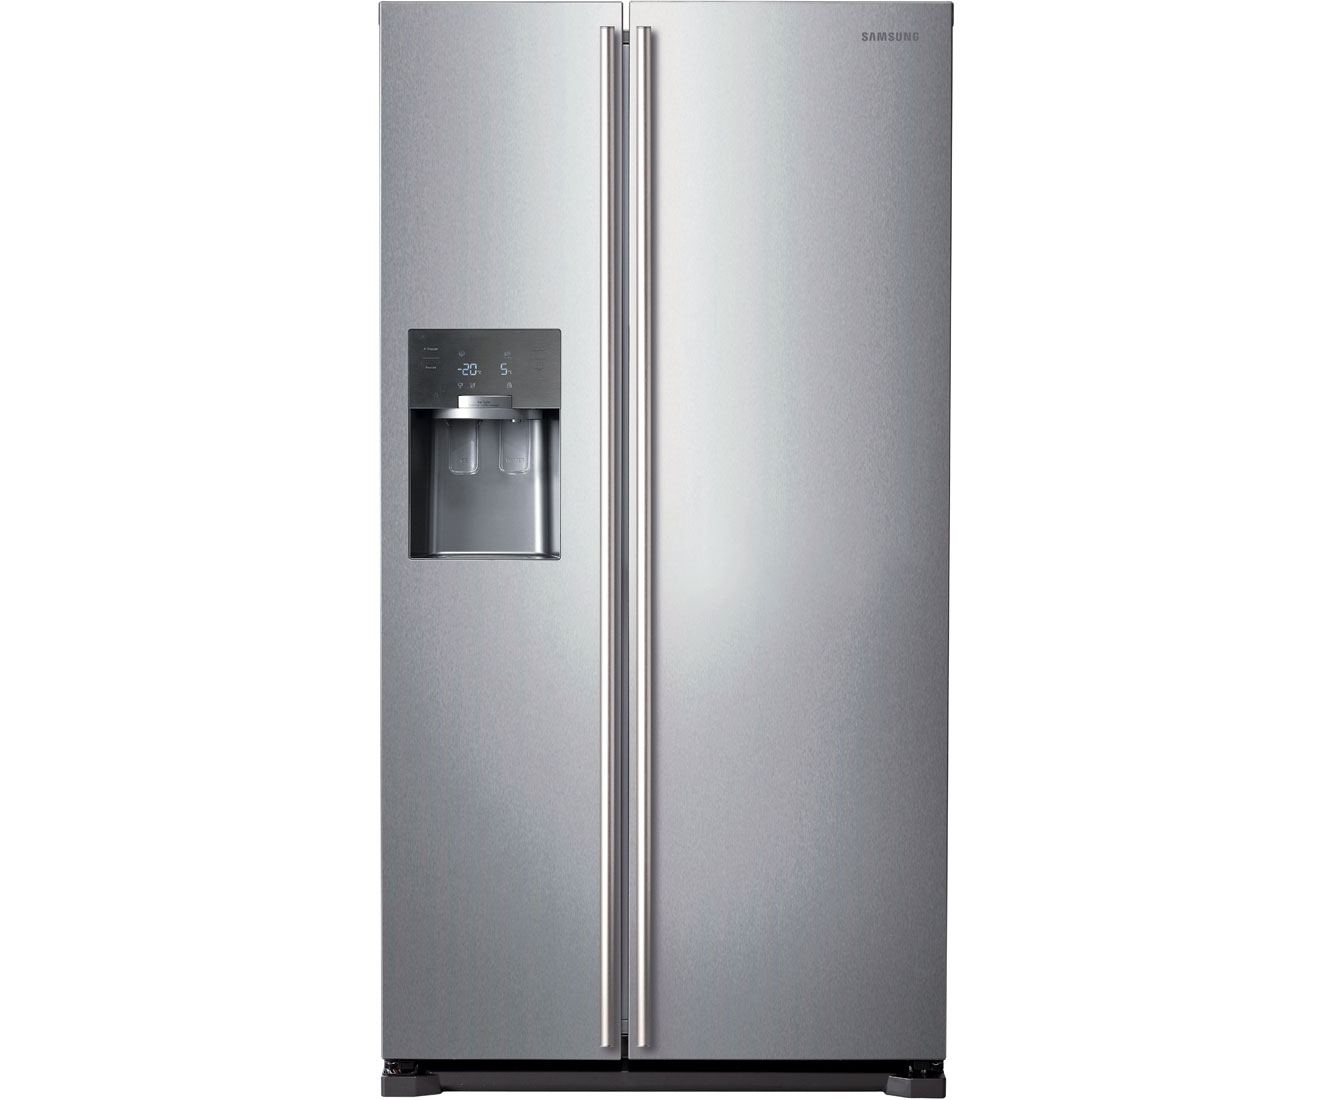 Samsung HSeries RS7567BHCSP Free Standing American Fridge Freezer in Platinum Silver